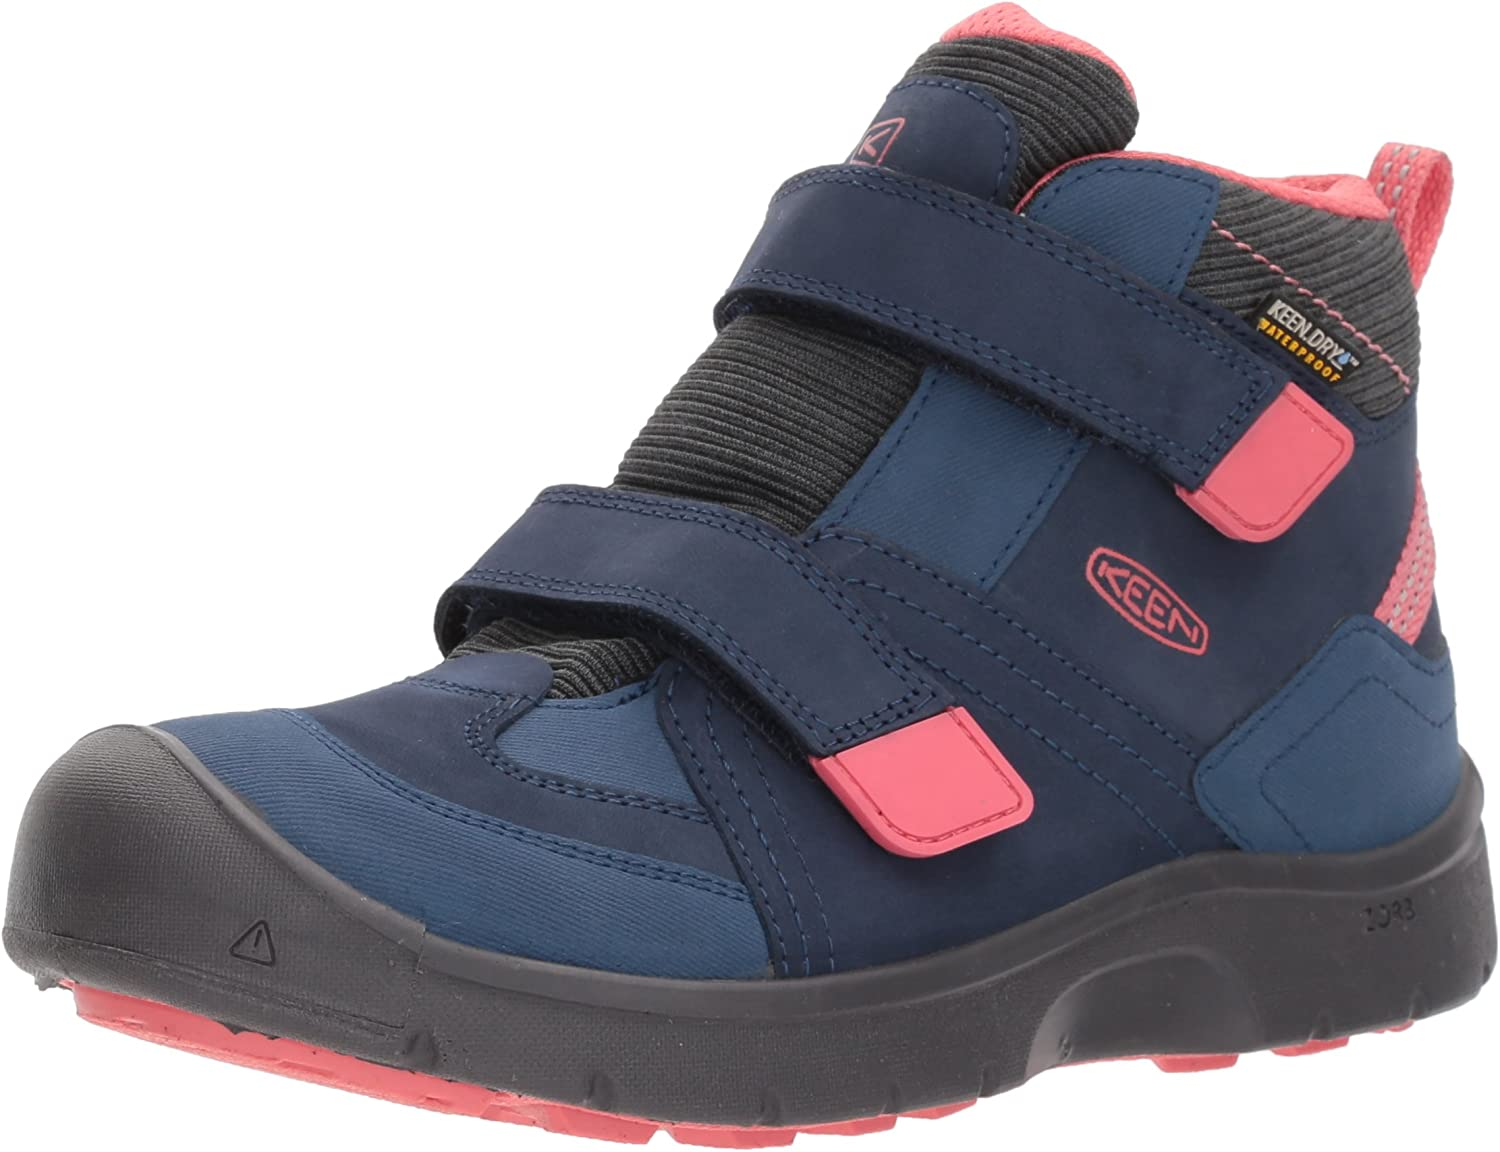 KEEN Kid's HIKEPORT MID Strap WP Boot